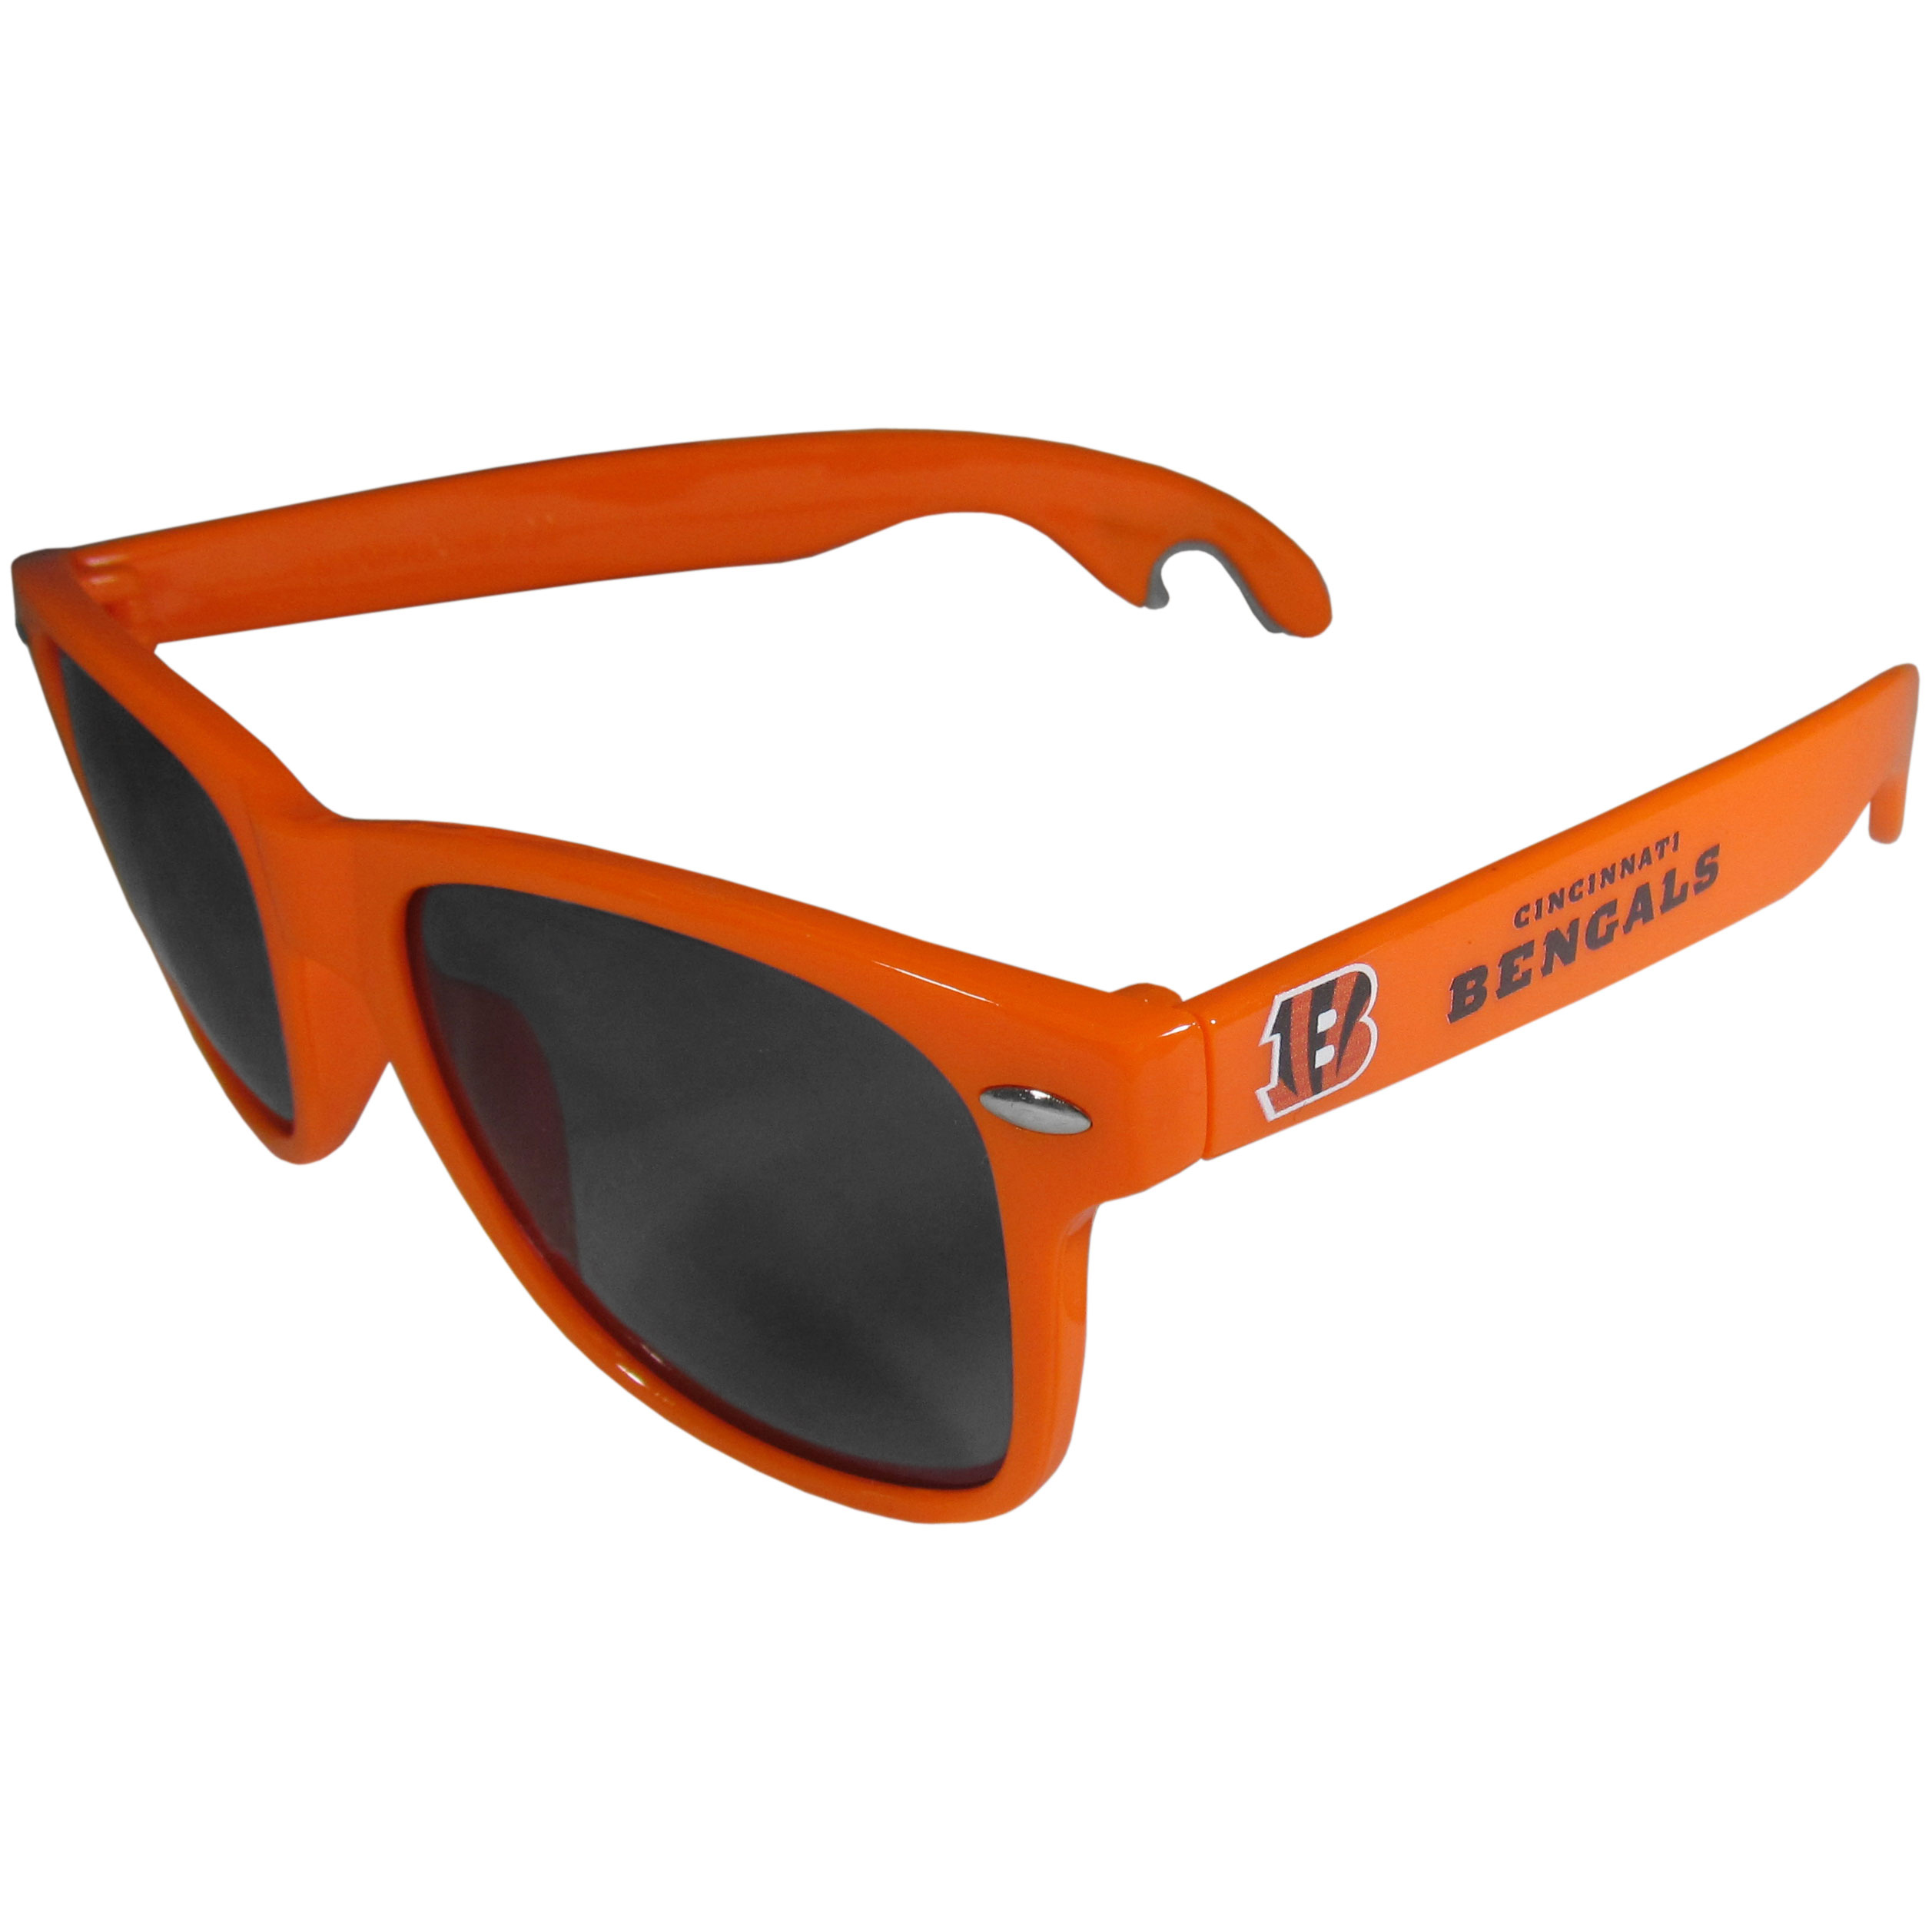 Cincinnati Bengals Beachfarer Bottle Opener Sunglasses, Orange - Seriously, these sunglasses open bottles! Keep the party going with these amazing Cincinnati Bengals bottle opener sunglasses. The stylish retro frames feature team designs on the arms and functional bottle openers on the end of the arms. Whether you are at the beach or having a backyard BBQ on game day, these shades will keep your eyes protected with 100% UVA/UVB protection and keep you hydrated with the handy bottle opener arms.